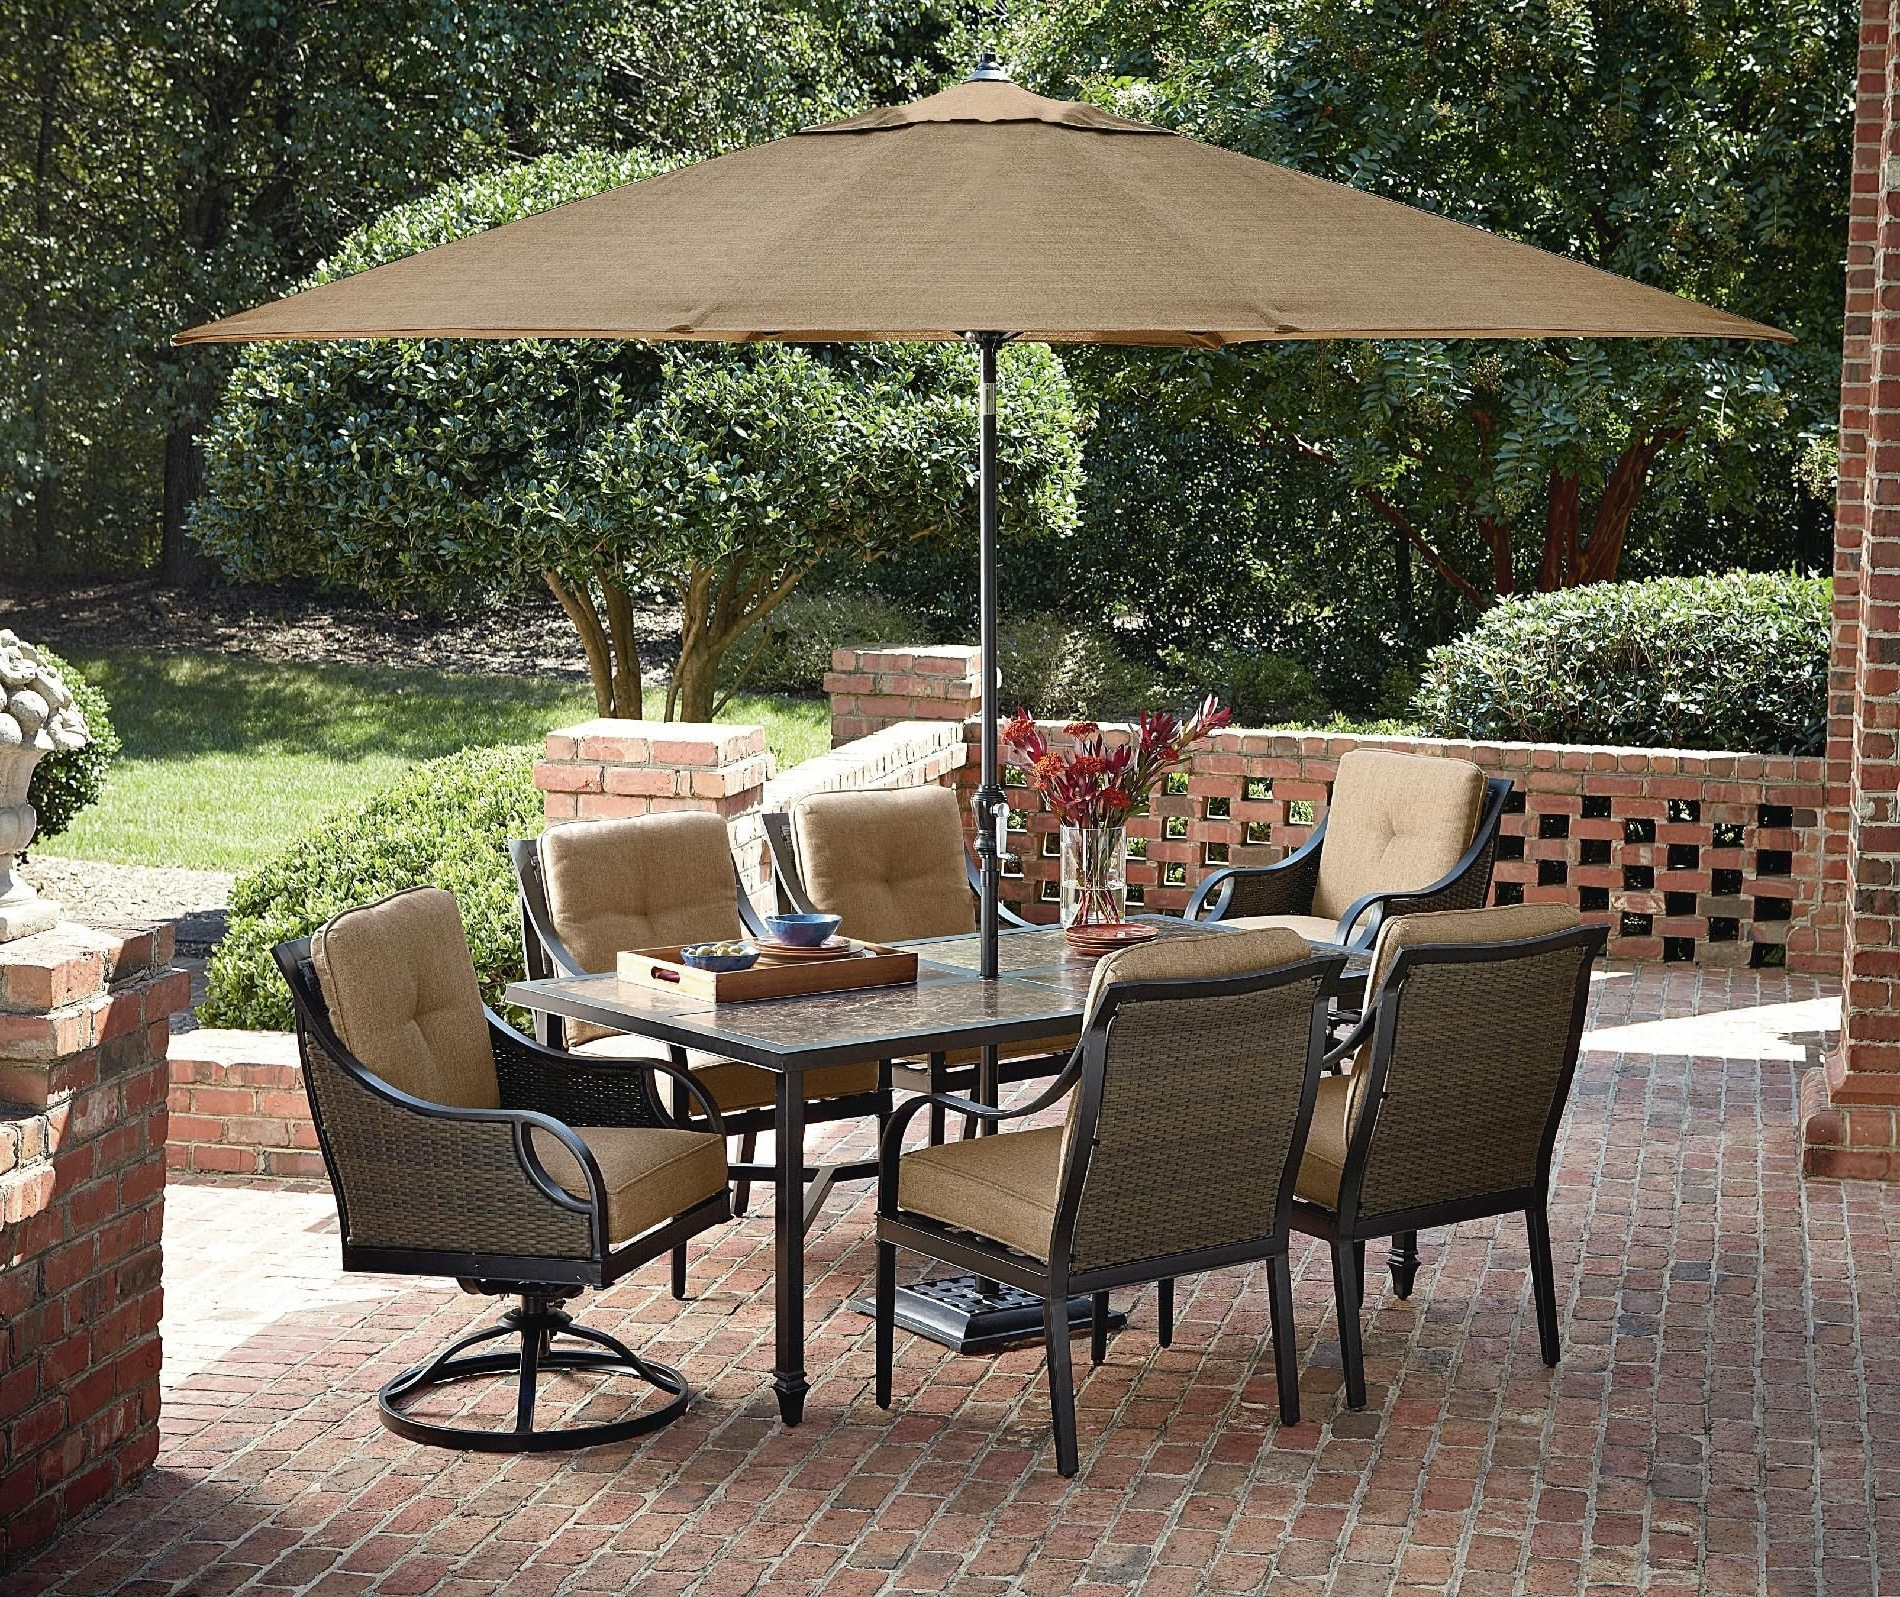 Sears Outdoor Patio Furniture Elegant Lazy Boy Outdoor Furniture Inside Best And Newest Lazy Boy Patio Conversation Sets (View 13 of 15)